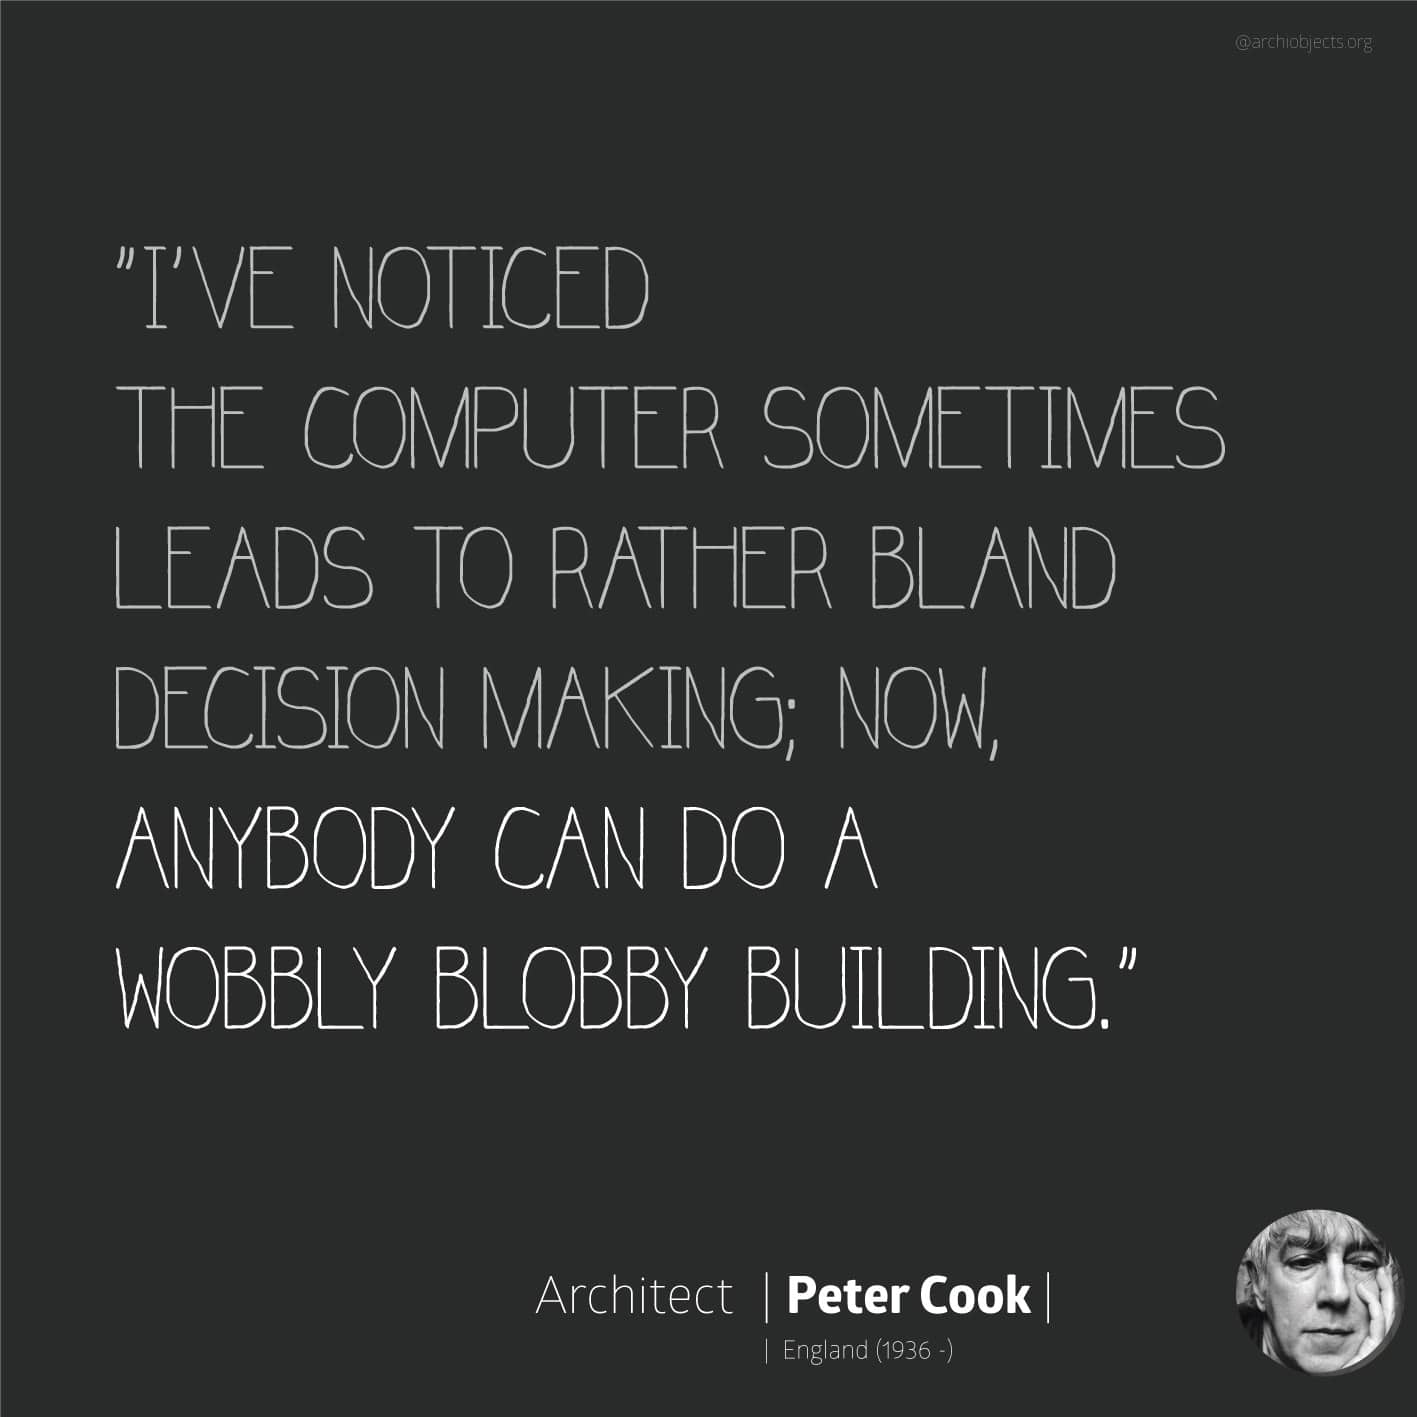 peter cook quote Architectural Quotes - Worth spreading Architects' voice